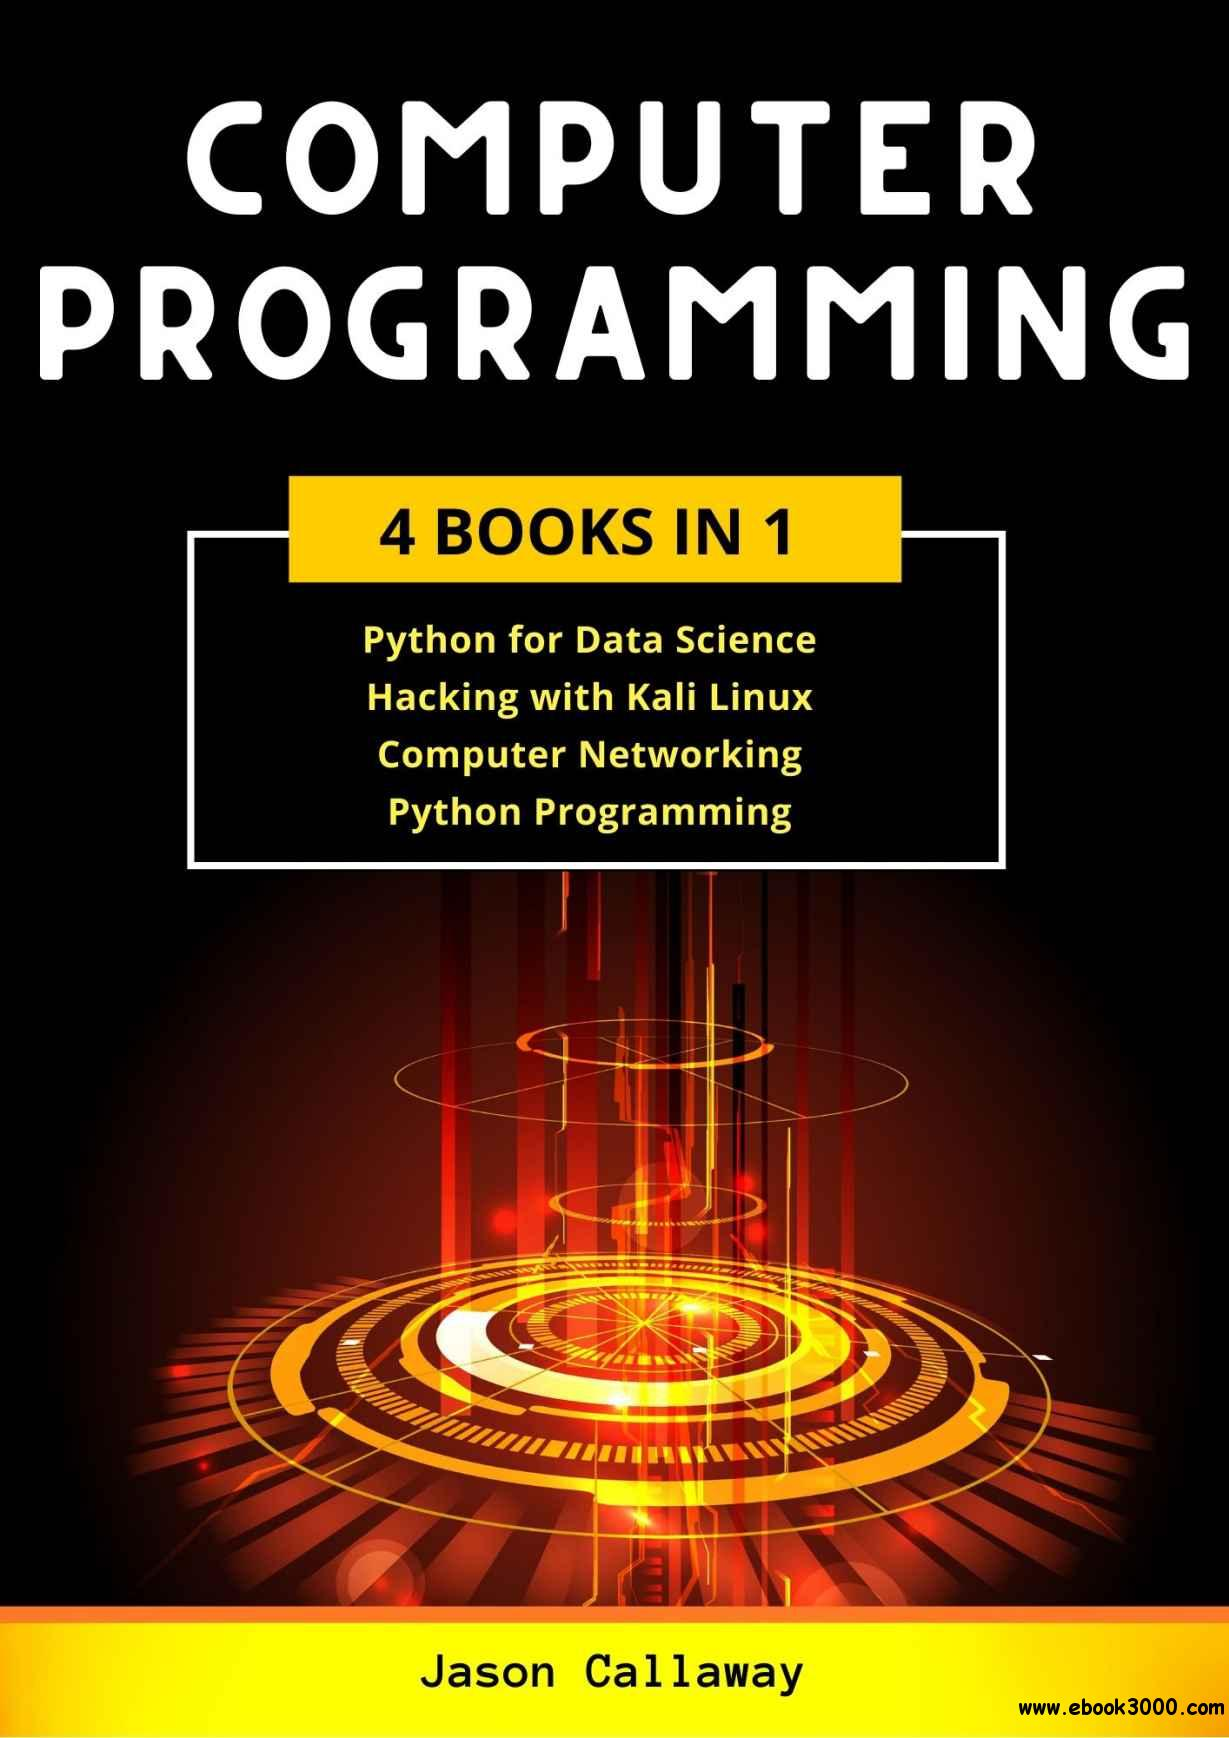 COMPUTER PROGRAMMING: 4 Books in 1: Data Science, Hacking with Kali Linux, Computer Networking for Beginners, Python Programmin